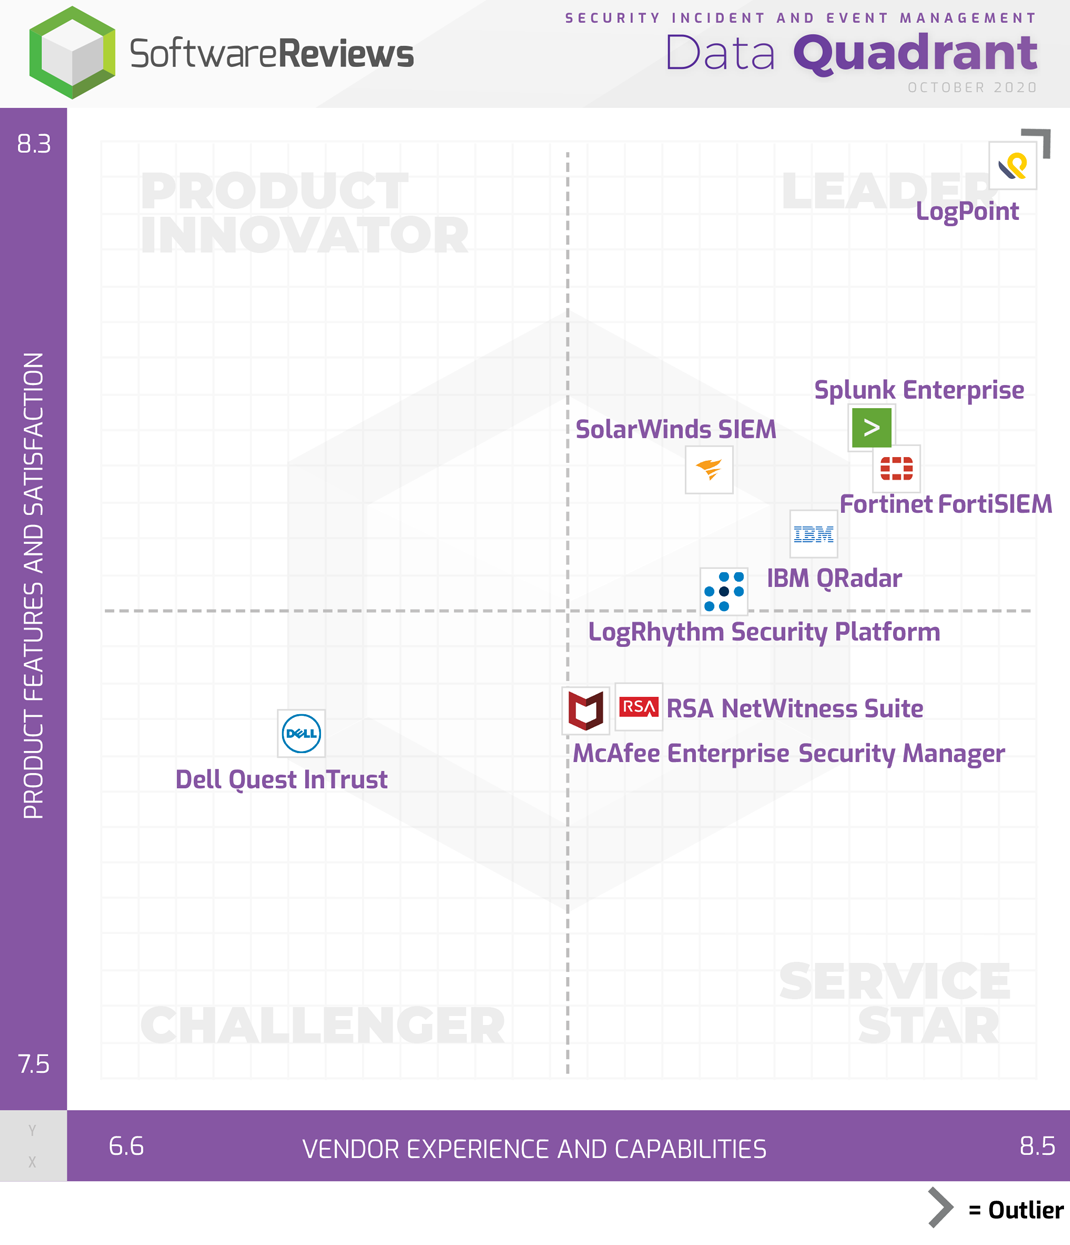 Security Incident and Event Management Data Quadrant